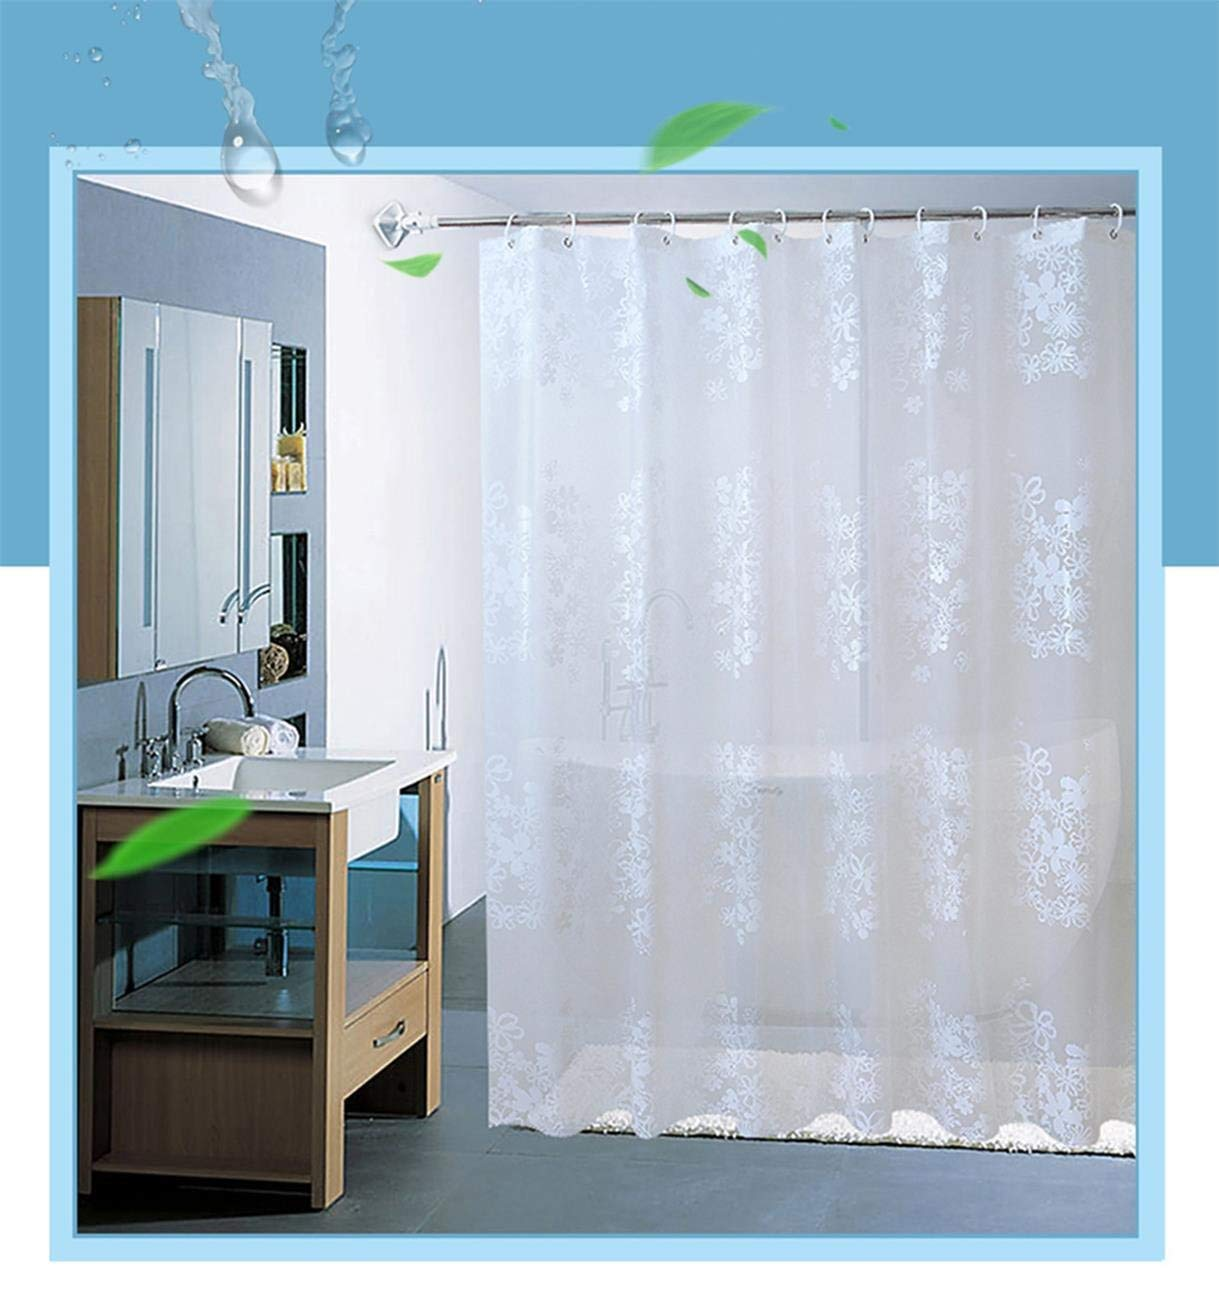 Get Quotations PEVA Shower Curtain Liner Mold And Mildew Resistant Anti Bacterial Heavy Duty LinerWaterproof